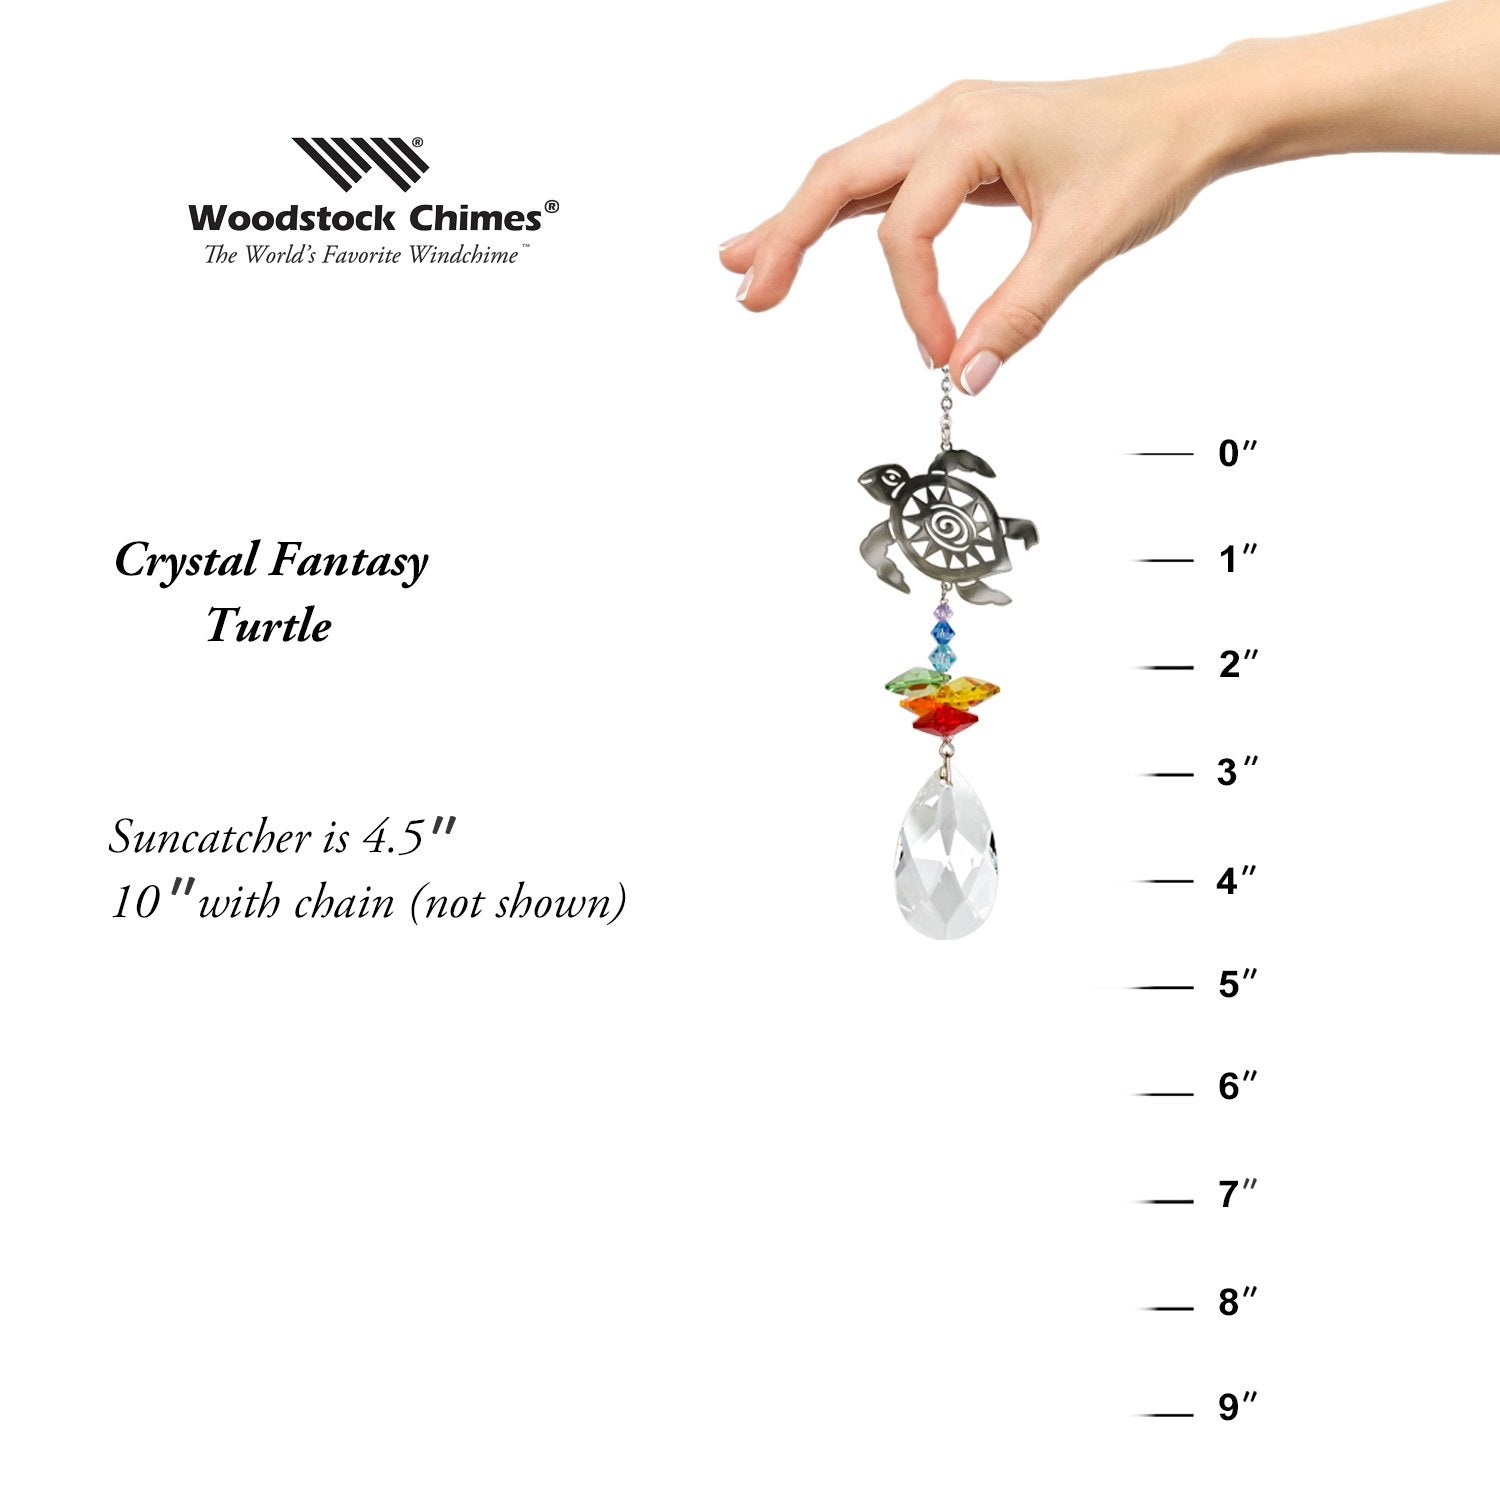 Crystal Fantasy Suncatcher - Turtle proportion image